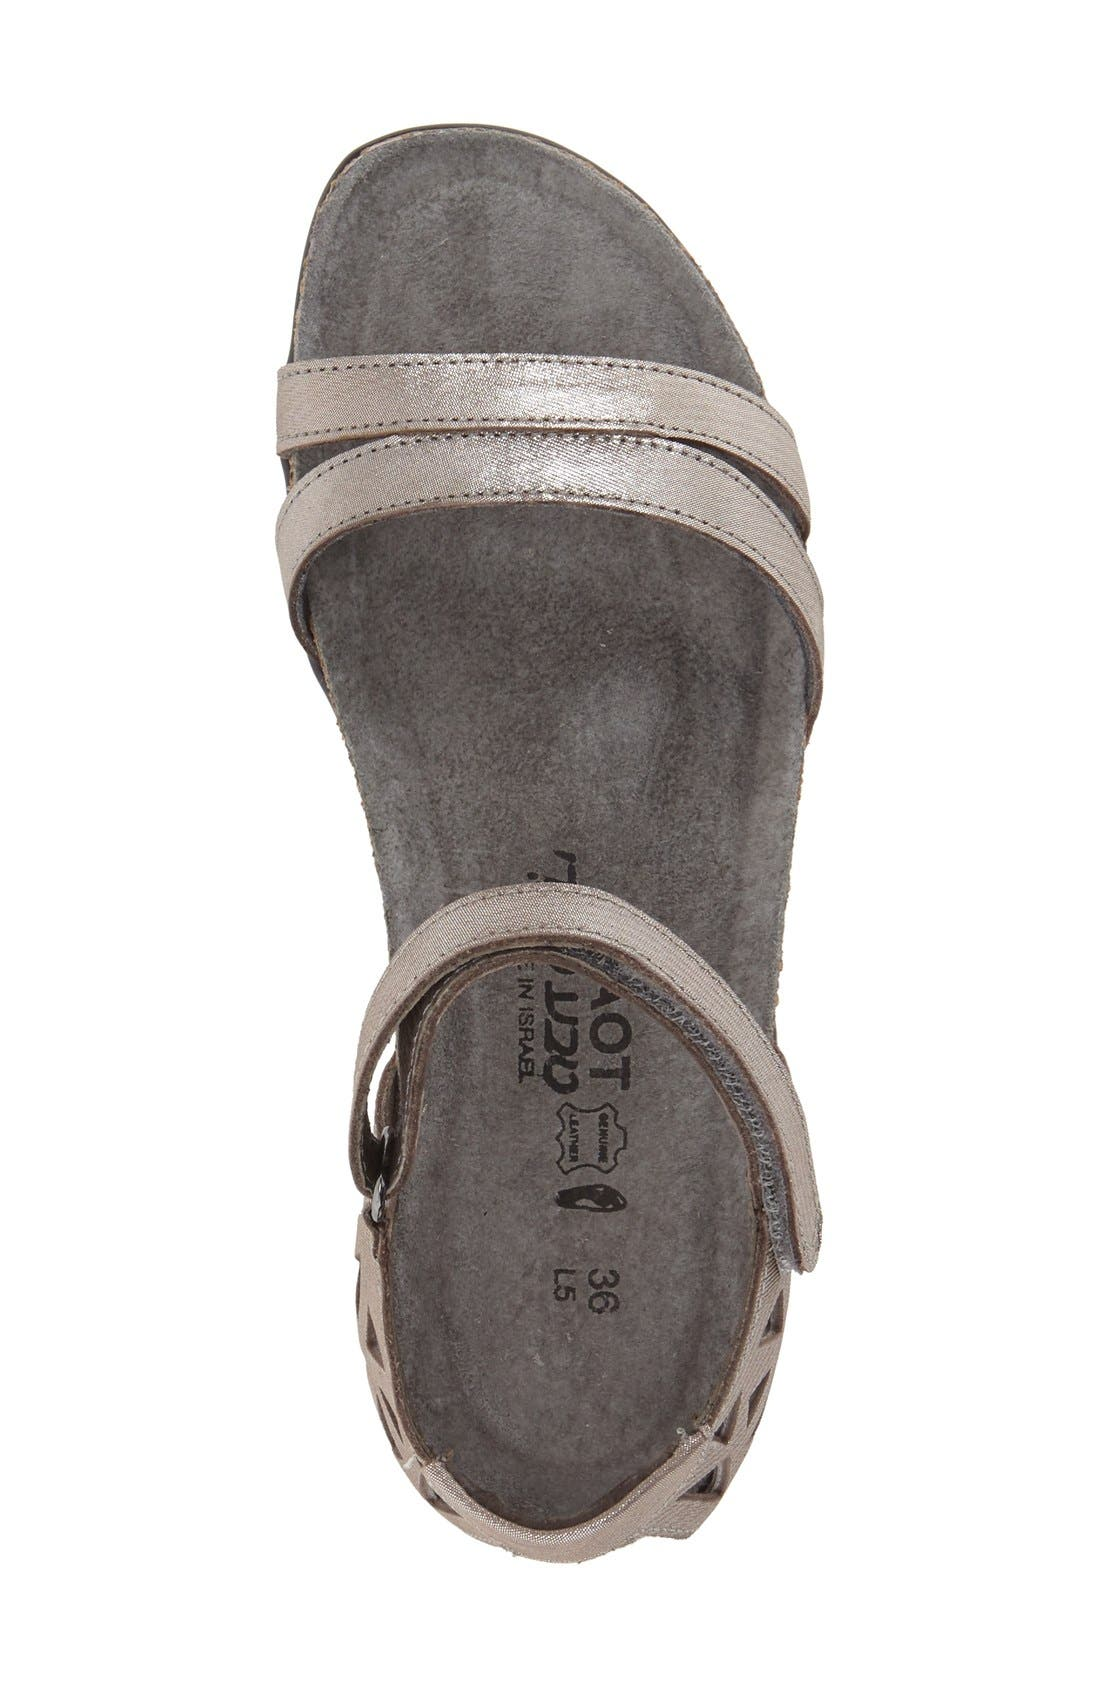 'Bonnie' Sandal,                             Alternate thumbnail 3, color,                             SILVER THREADS LEATHER